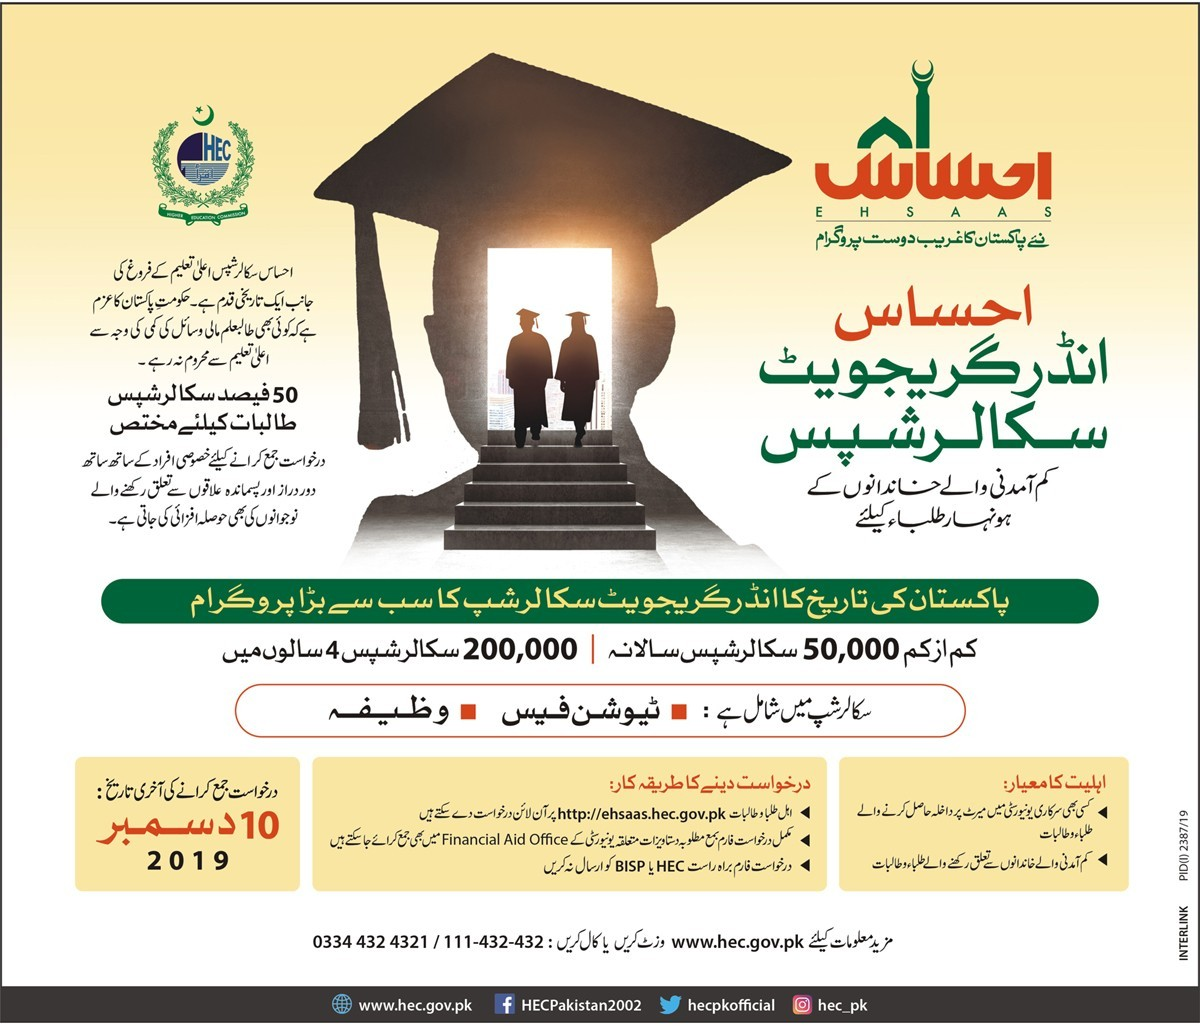 Ehsaas undergraduate scholarship program Test Roll No Slip